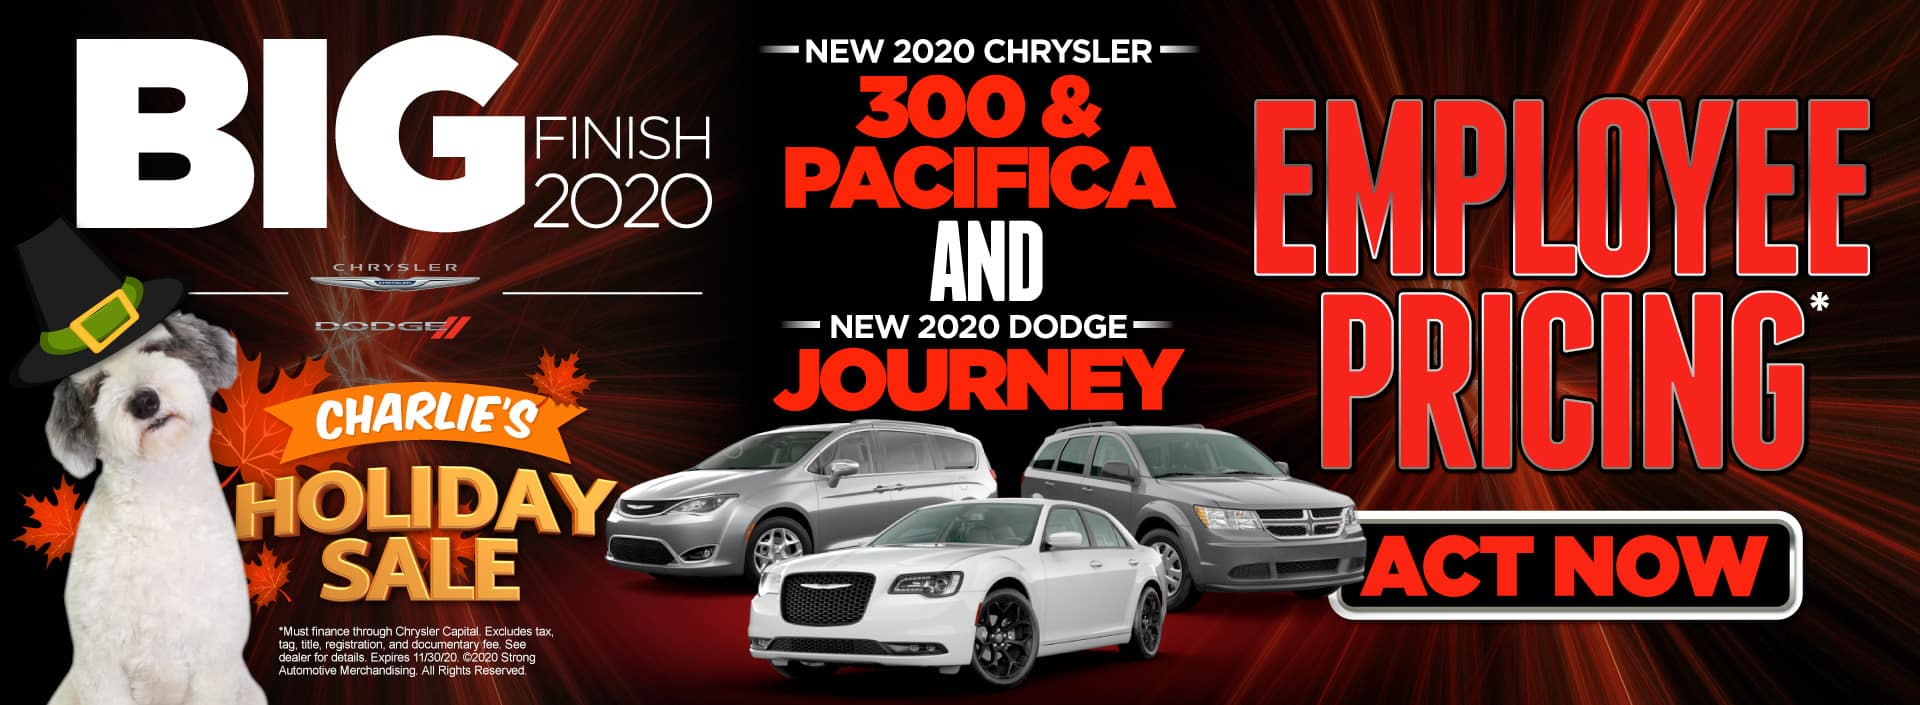 Employee Pricing on Chrysler 300s and Pacificas and Dodge Journeys | Act Now